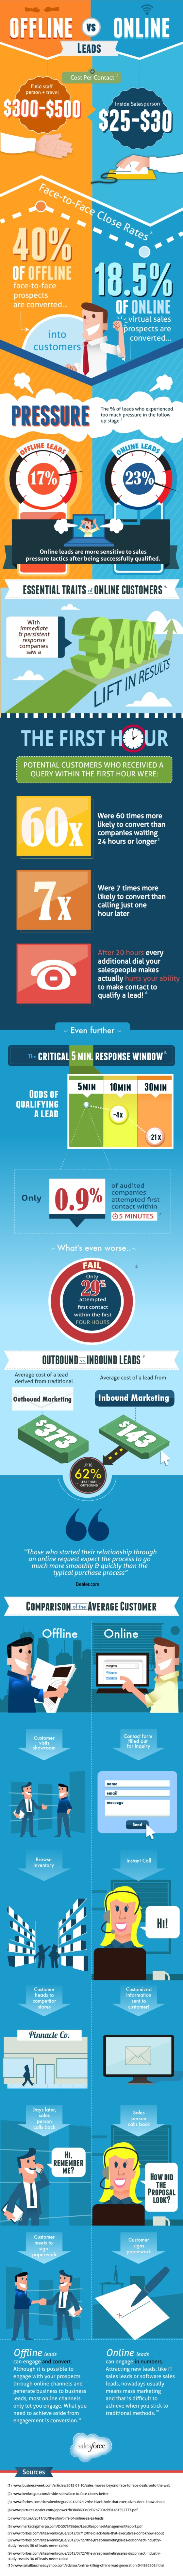 Infographic : Difference Between Online and Offline Leads